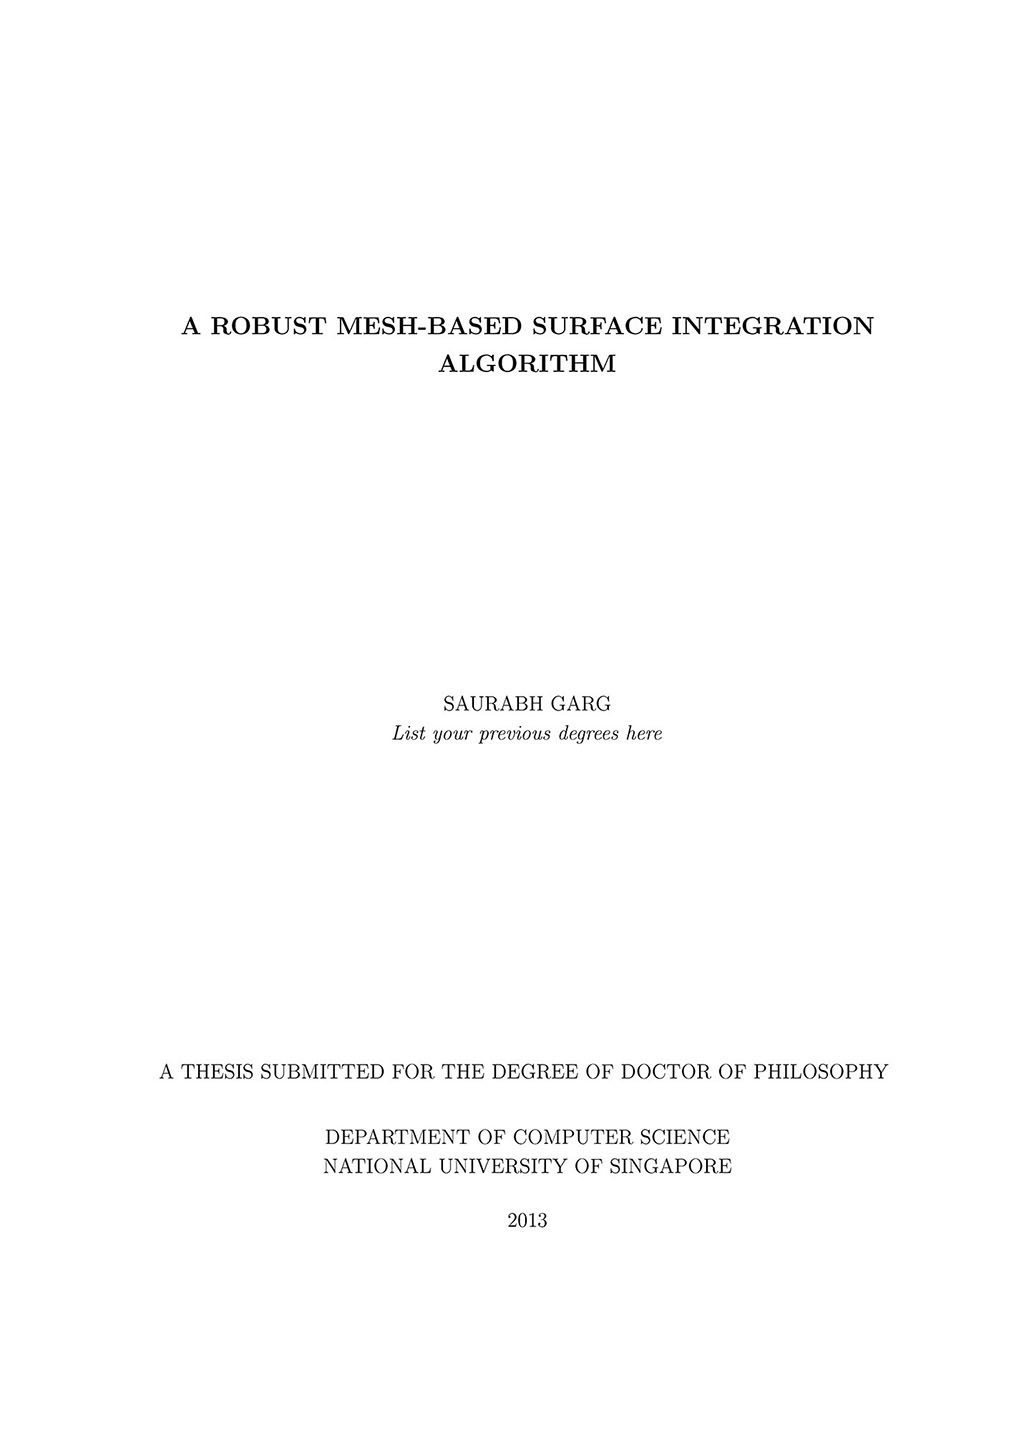 Nus phd thesis